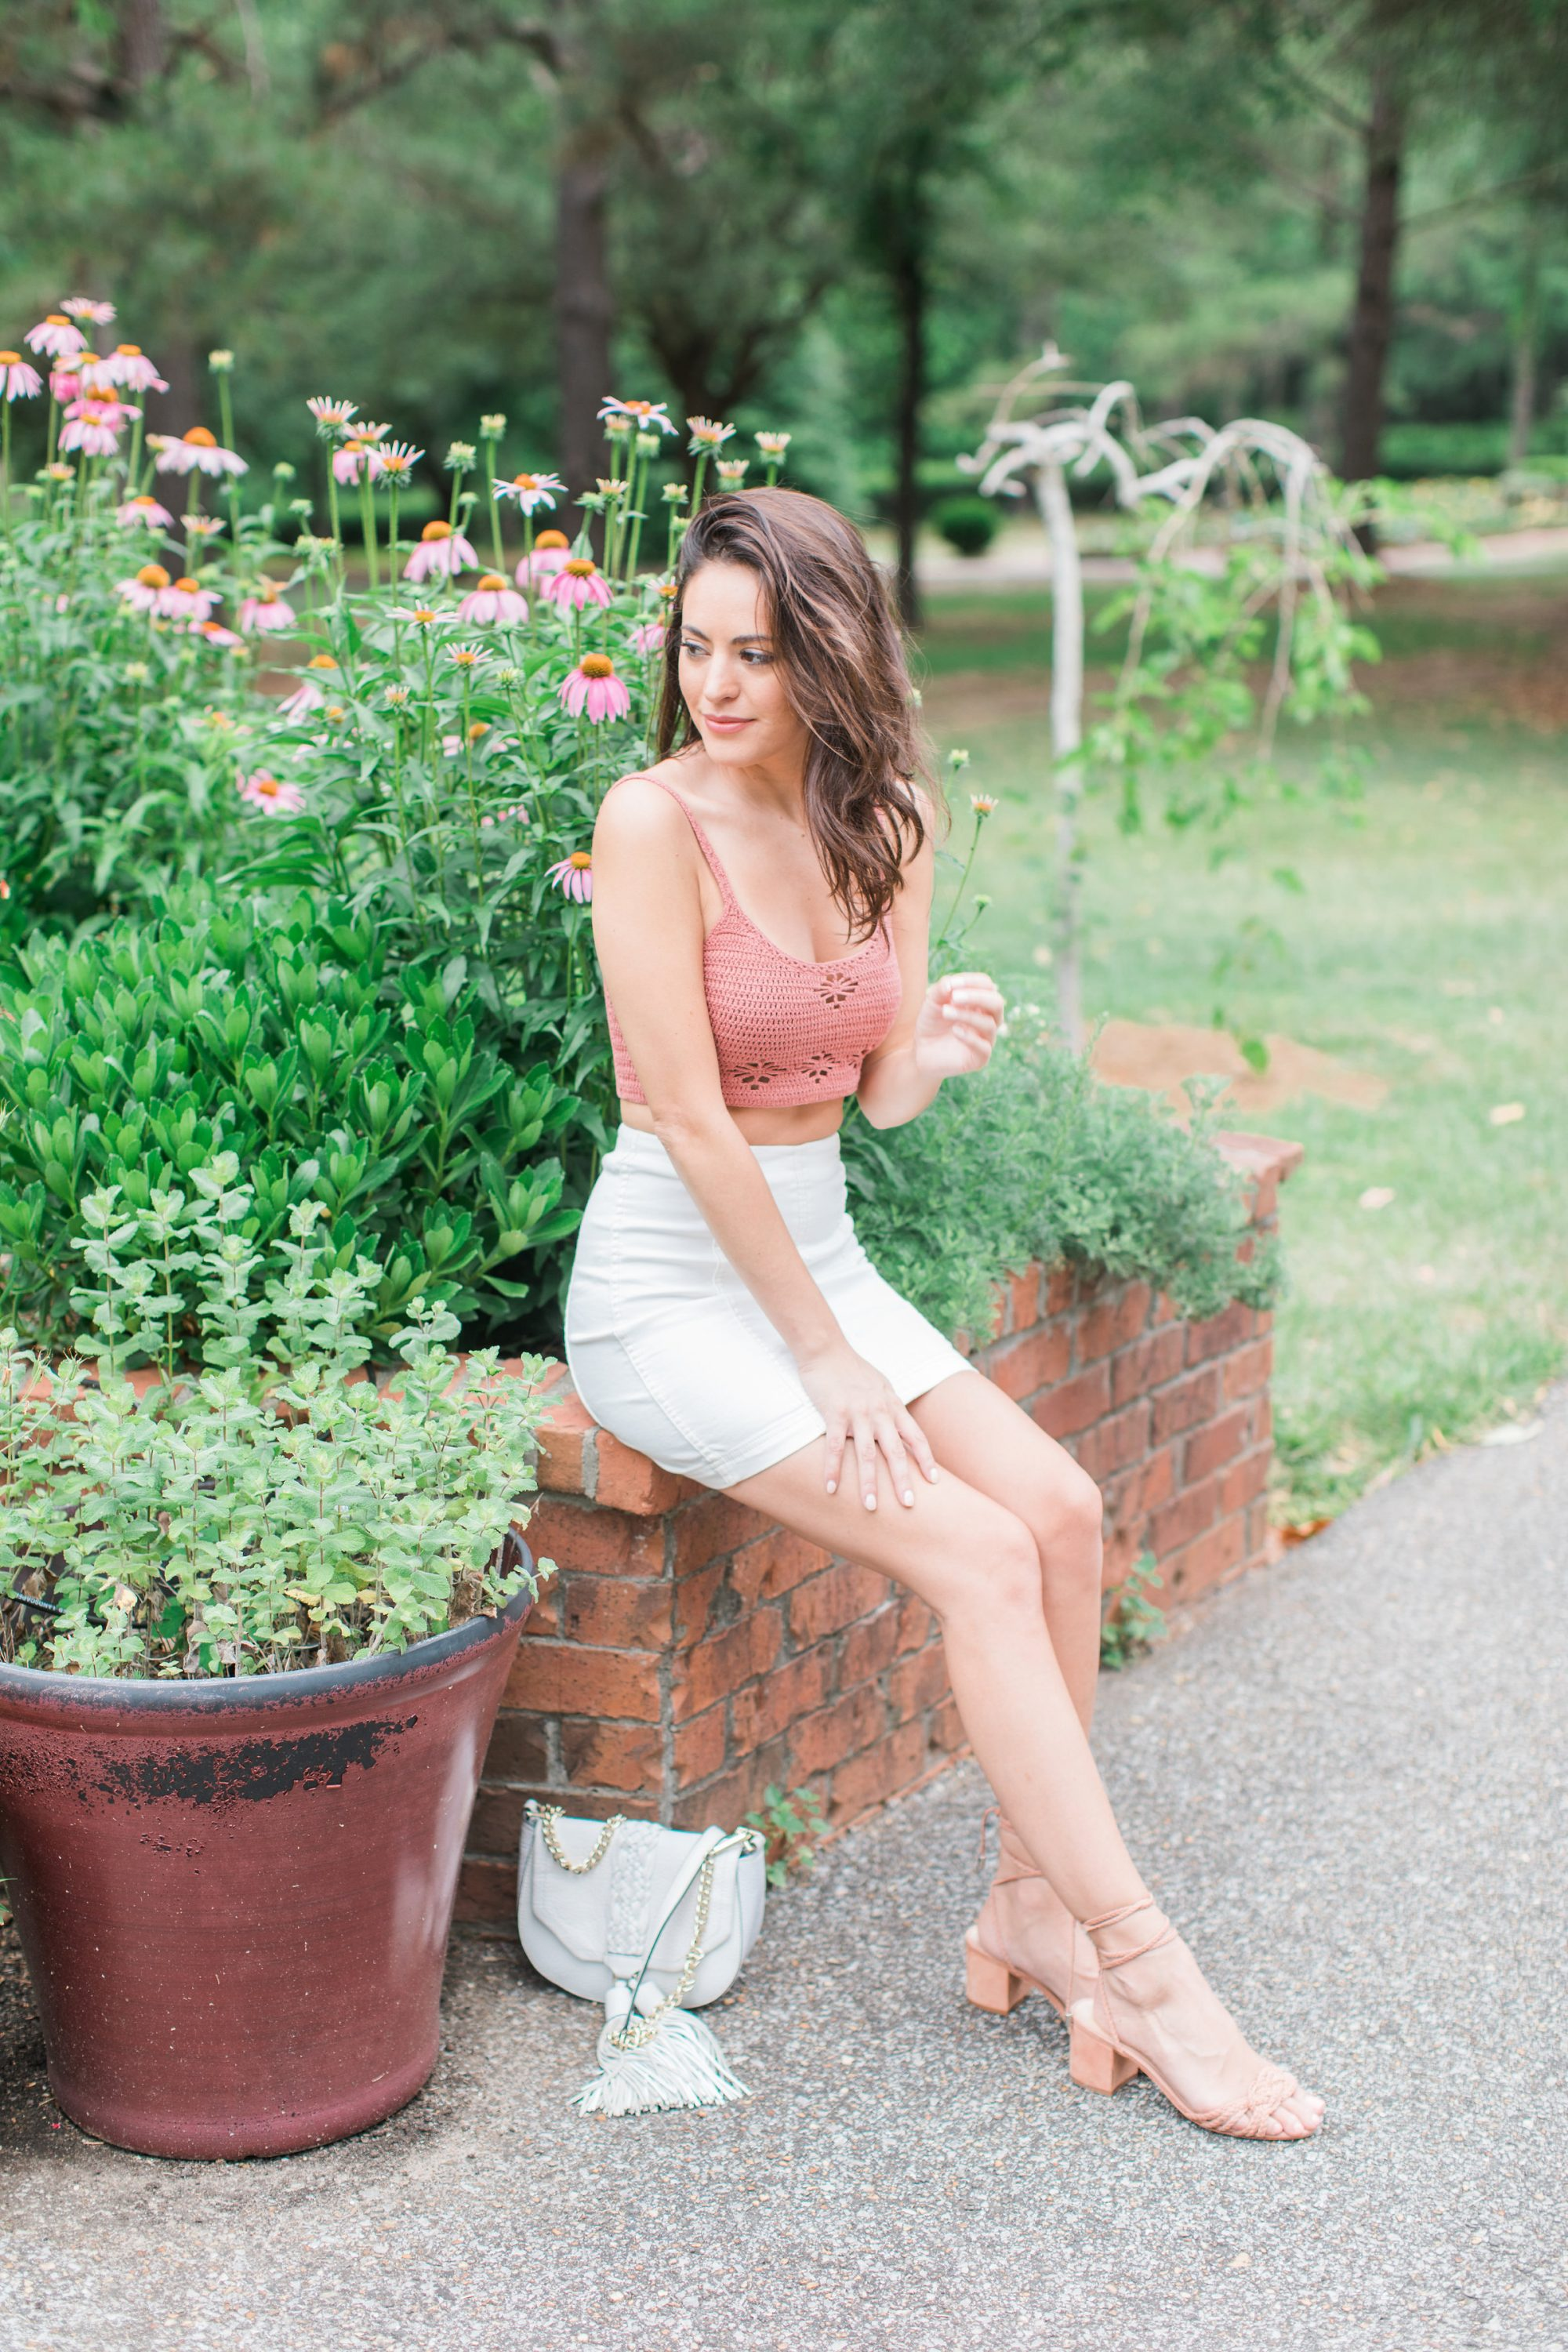 free people Berkinette Crochet Cami, free people Modern Femme Mini Skirt, Schutz Marlie toasted, spring outfit ideas, how to wear a crop top, summer outfits, how to wear tie up sandals